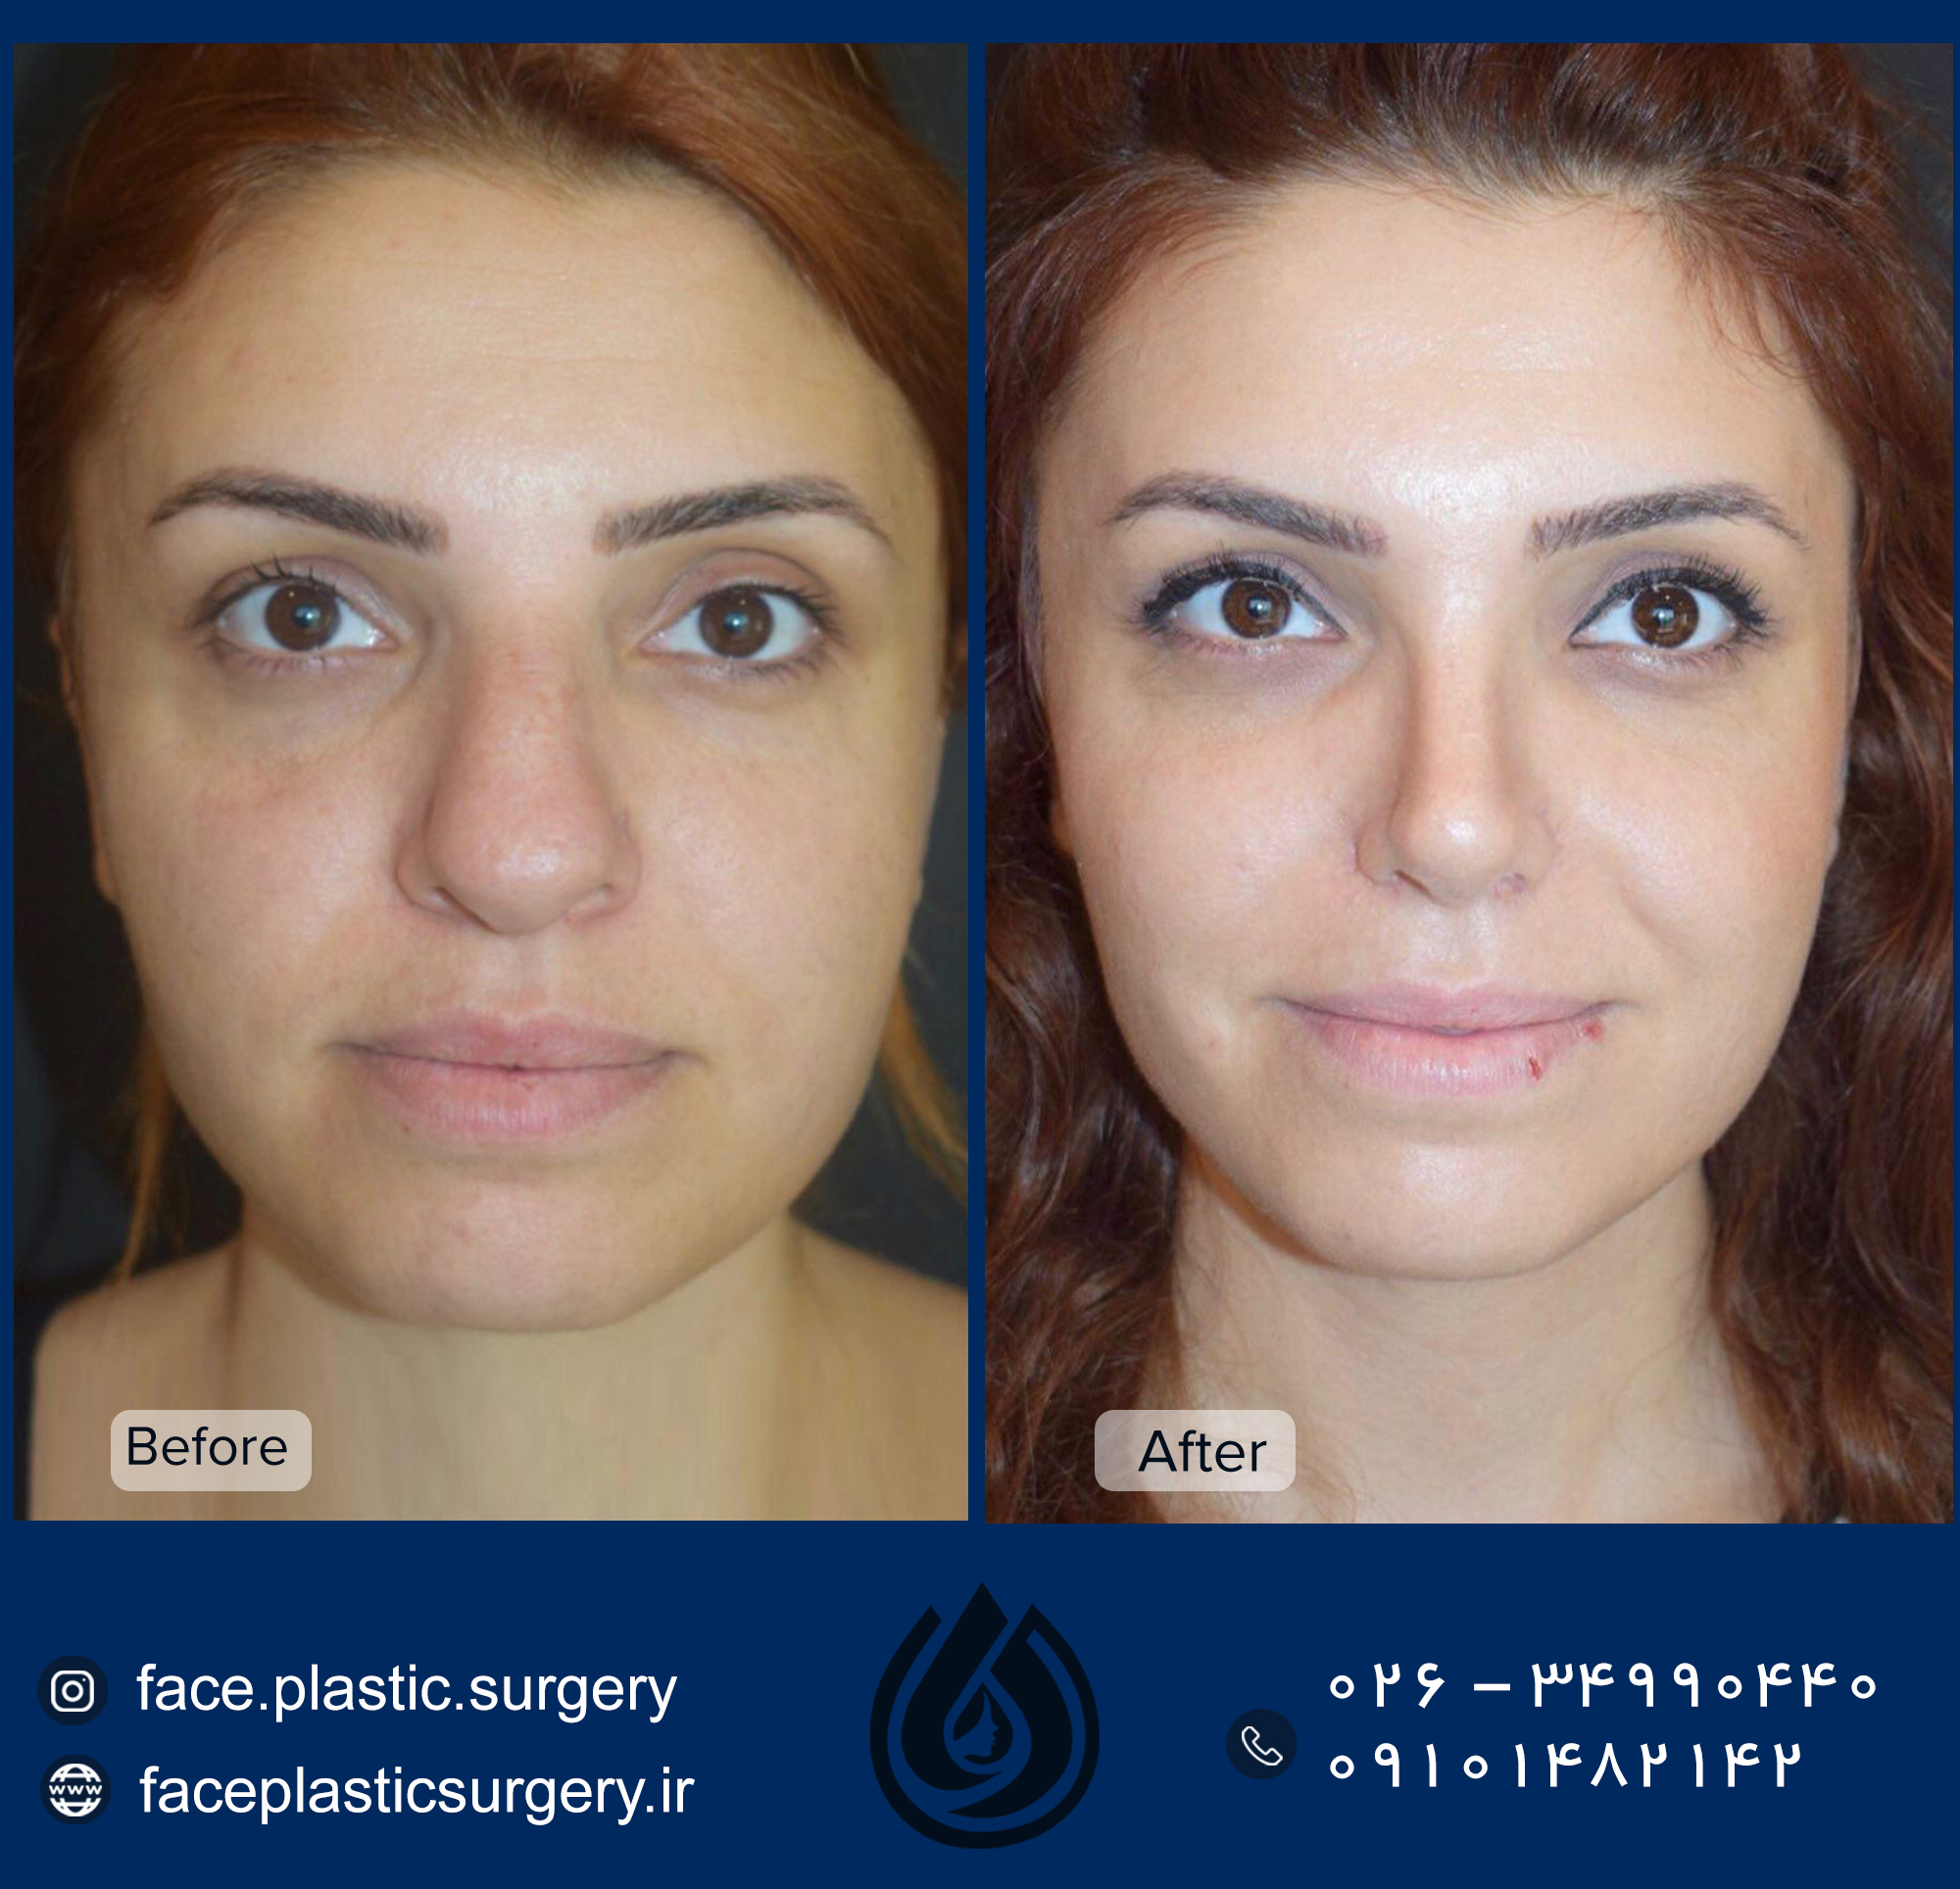 dr-norozi-before-after.jpg113